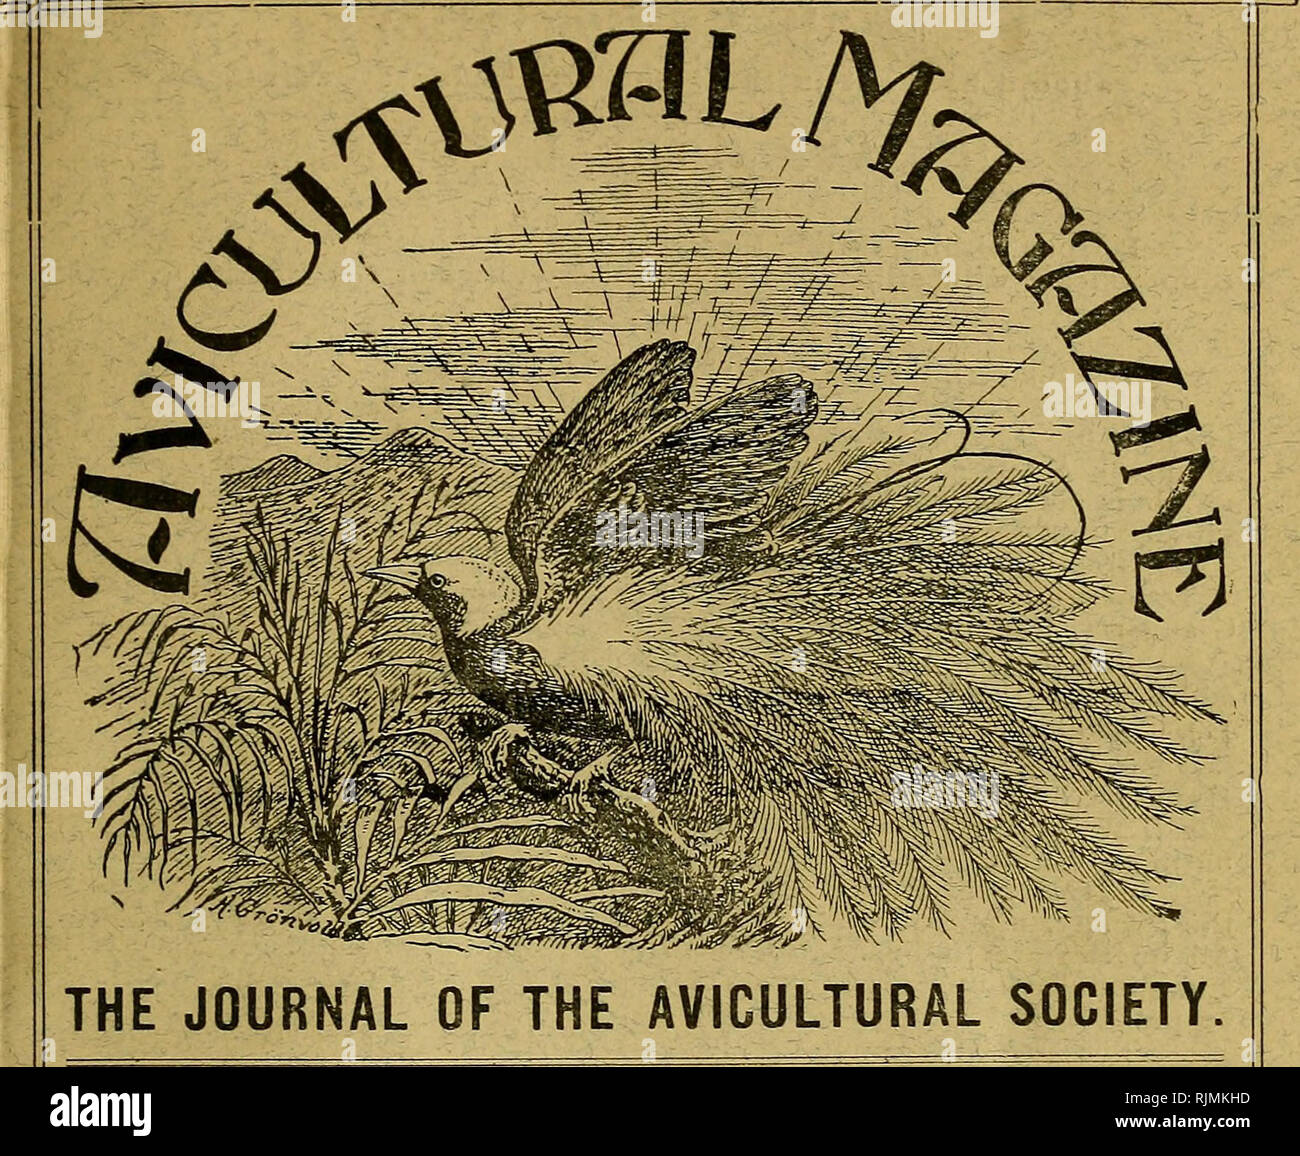 a33fcab2b Birds; Cage birds. NEW SERIES Vol. VI. No. 1. ? The price of this NOVEMBER,  1907 number is -j/. Members' Annual Subscription, 10 - | payable in advance.